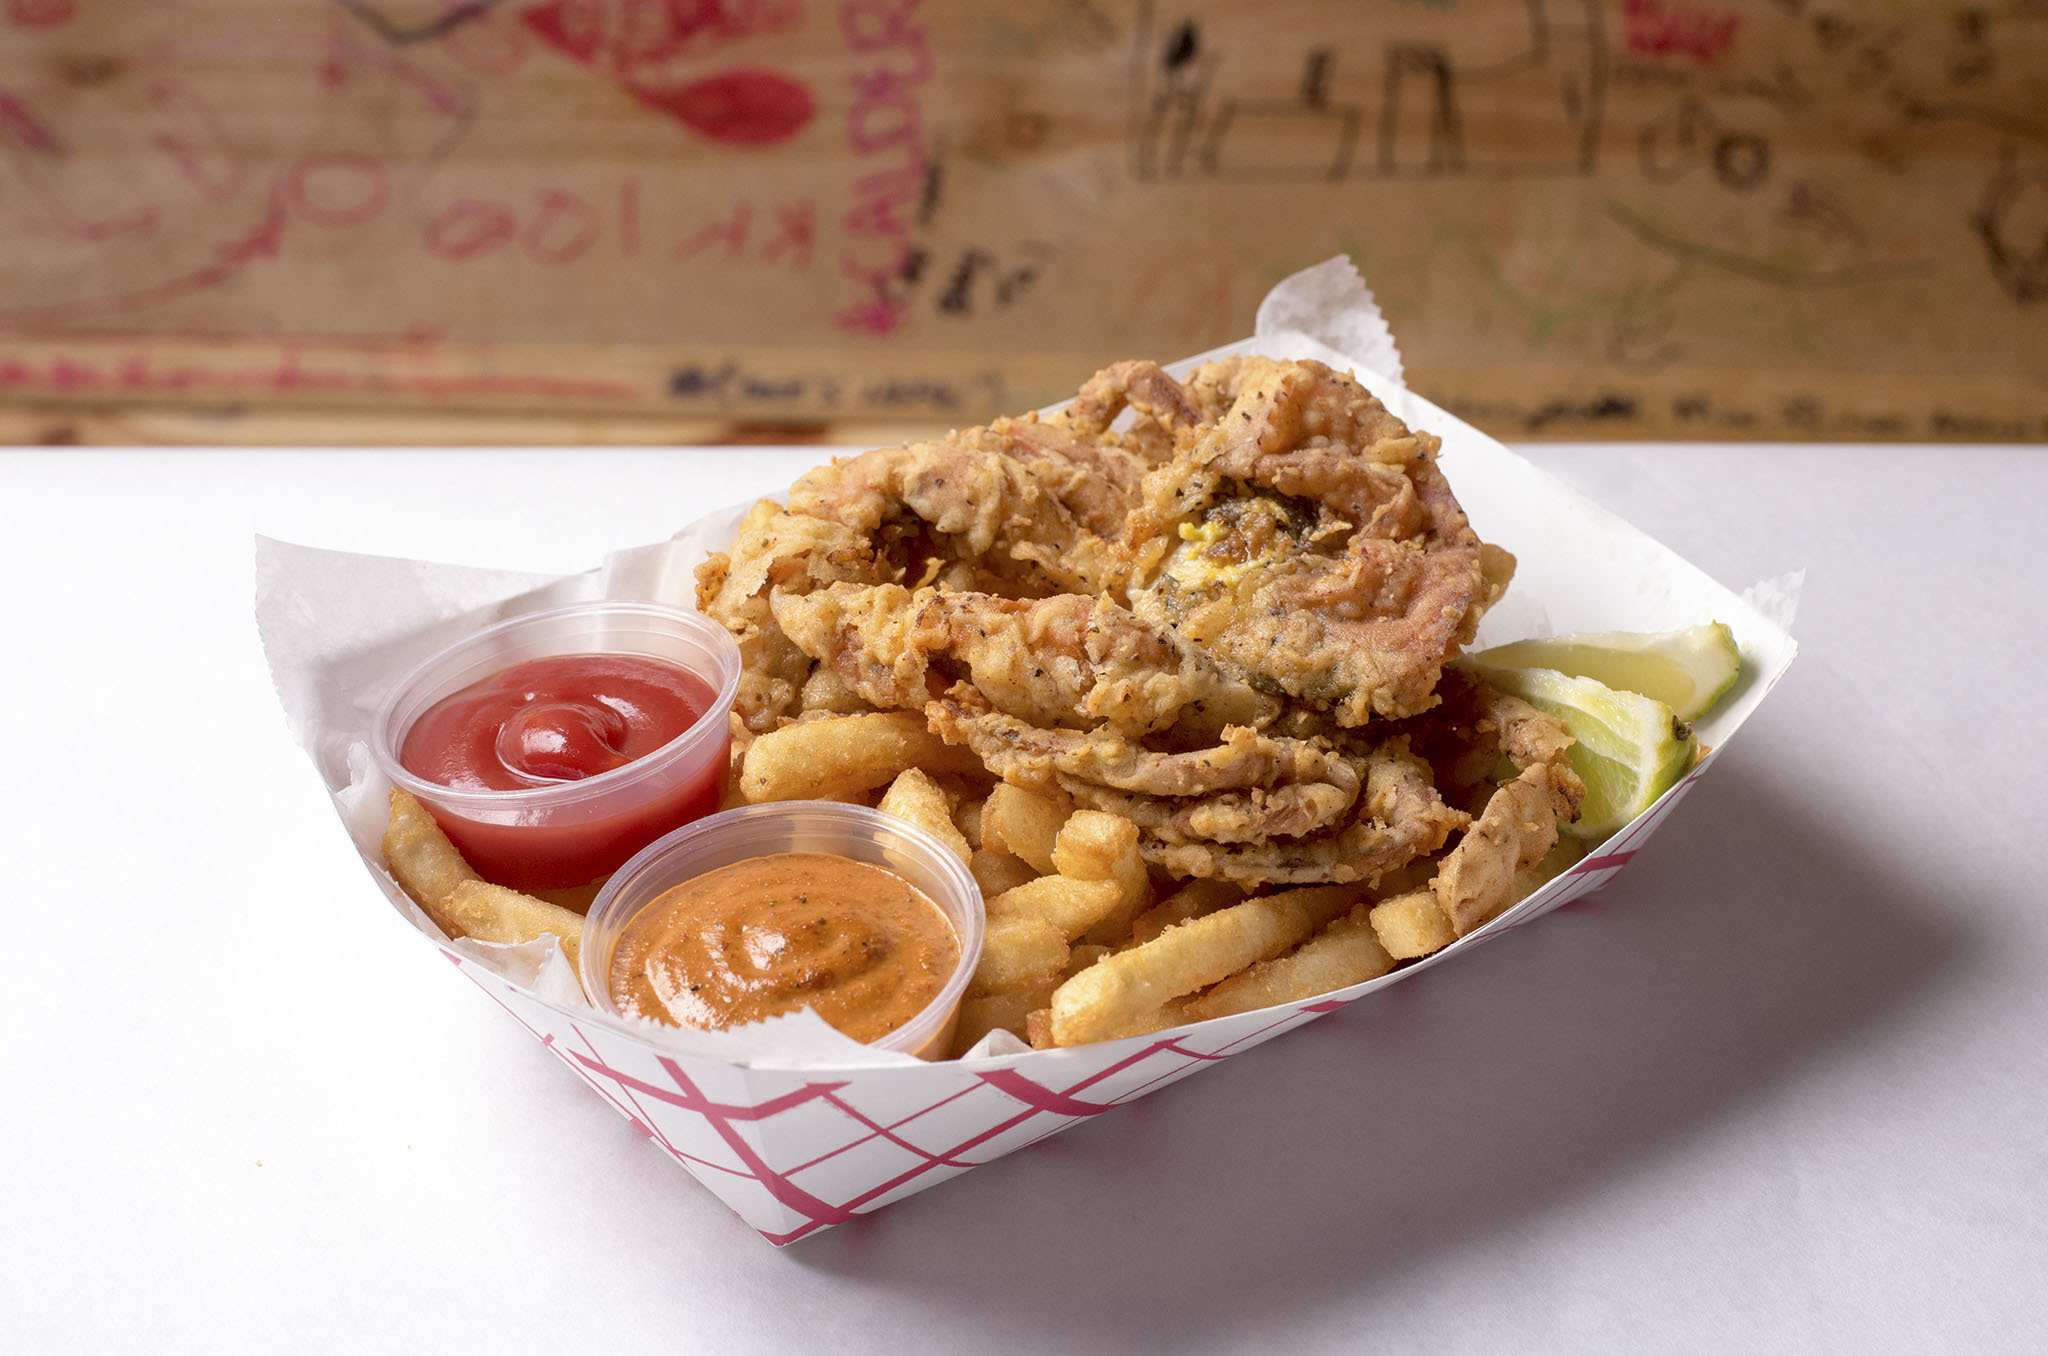 Fried soft-shell crab at the Angry Crab